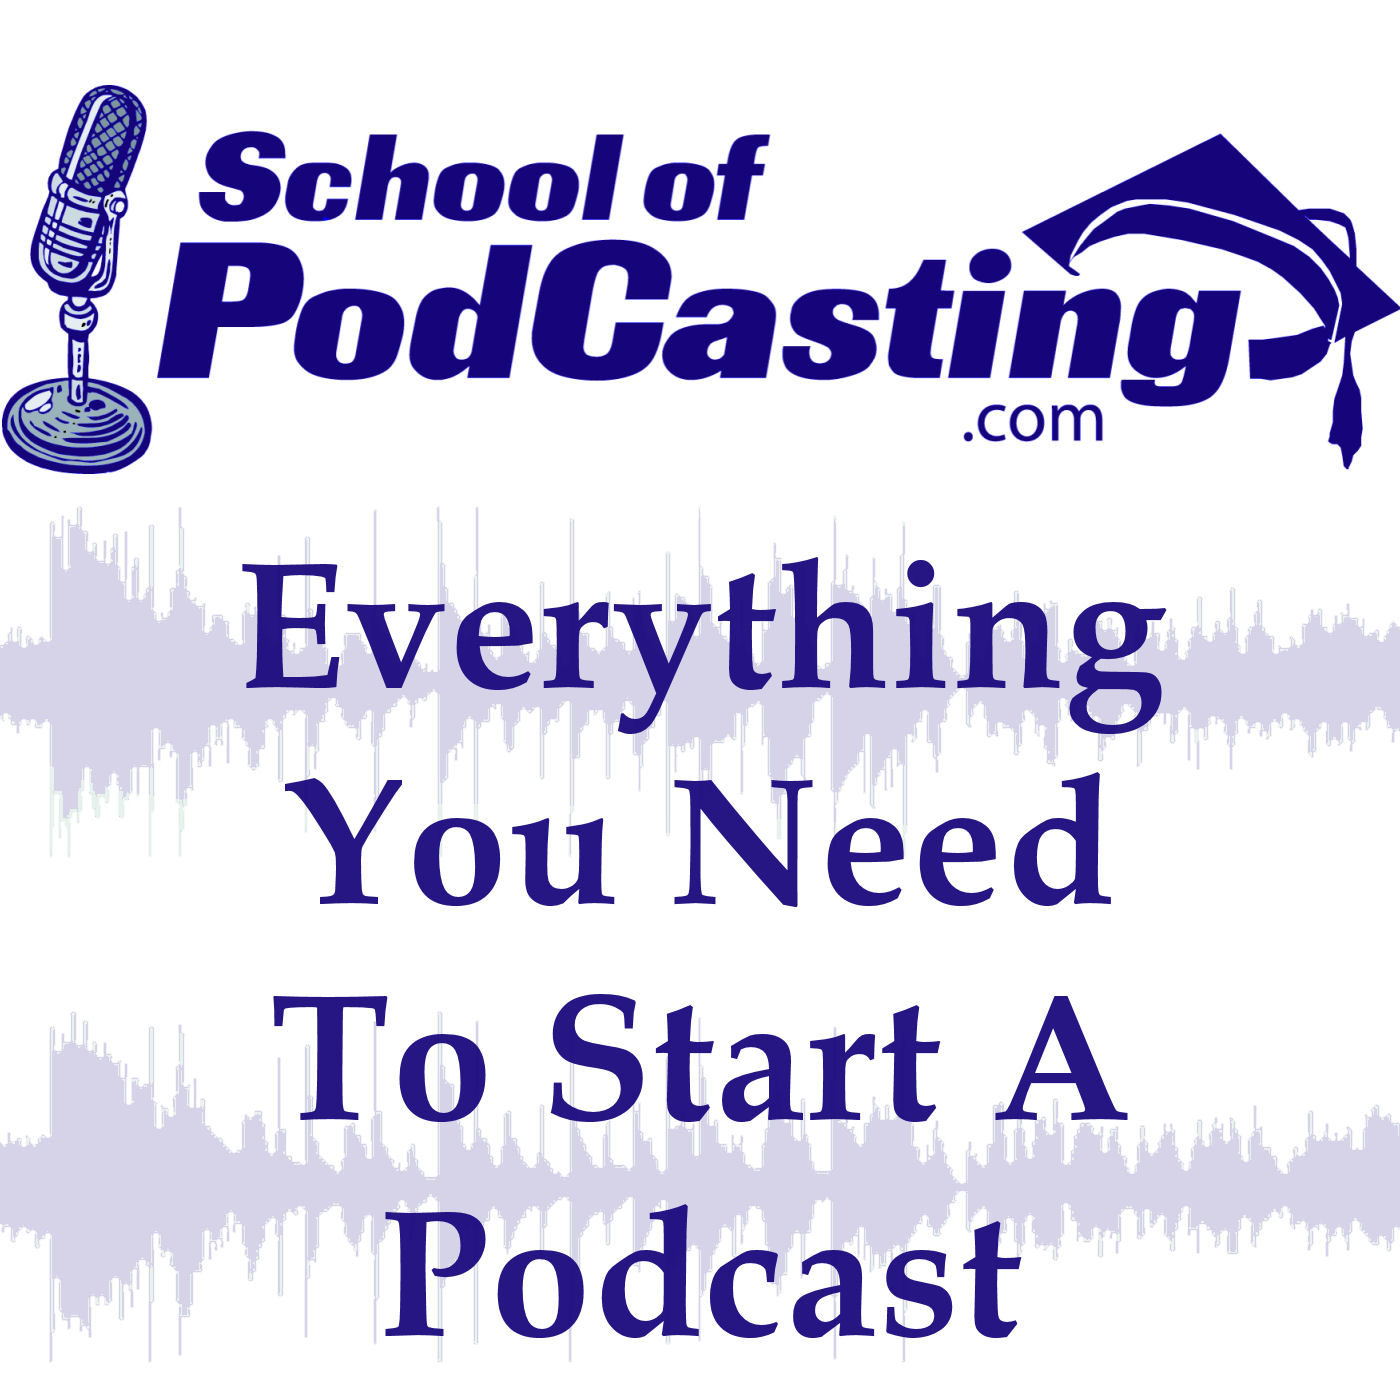 The School of Podcasting's Morning Announcements | Learn How to Podcast | Business | Promotion